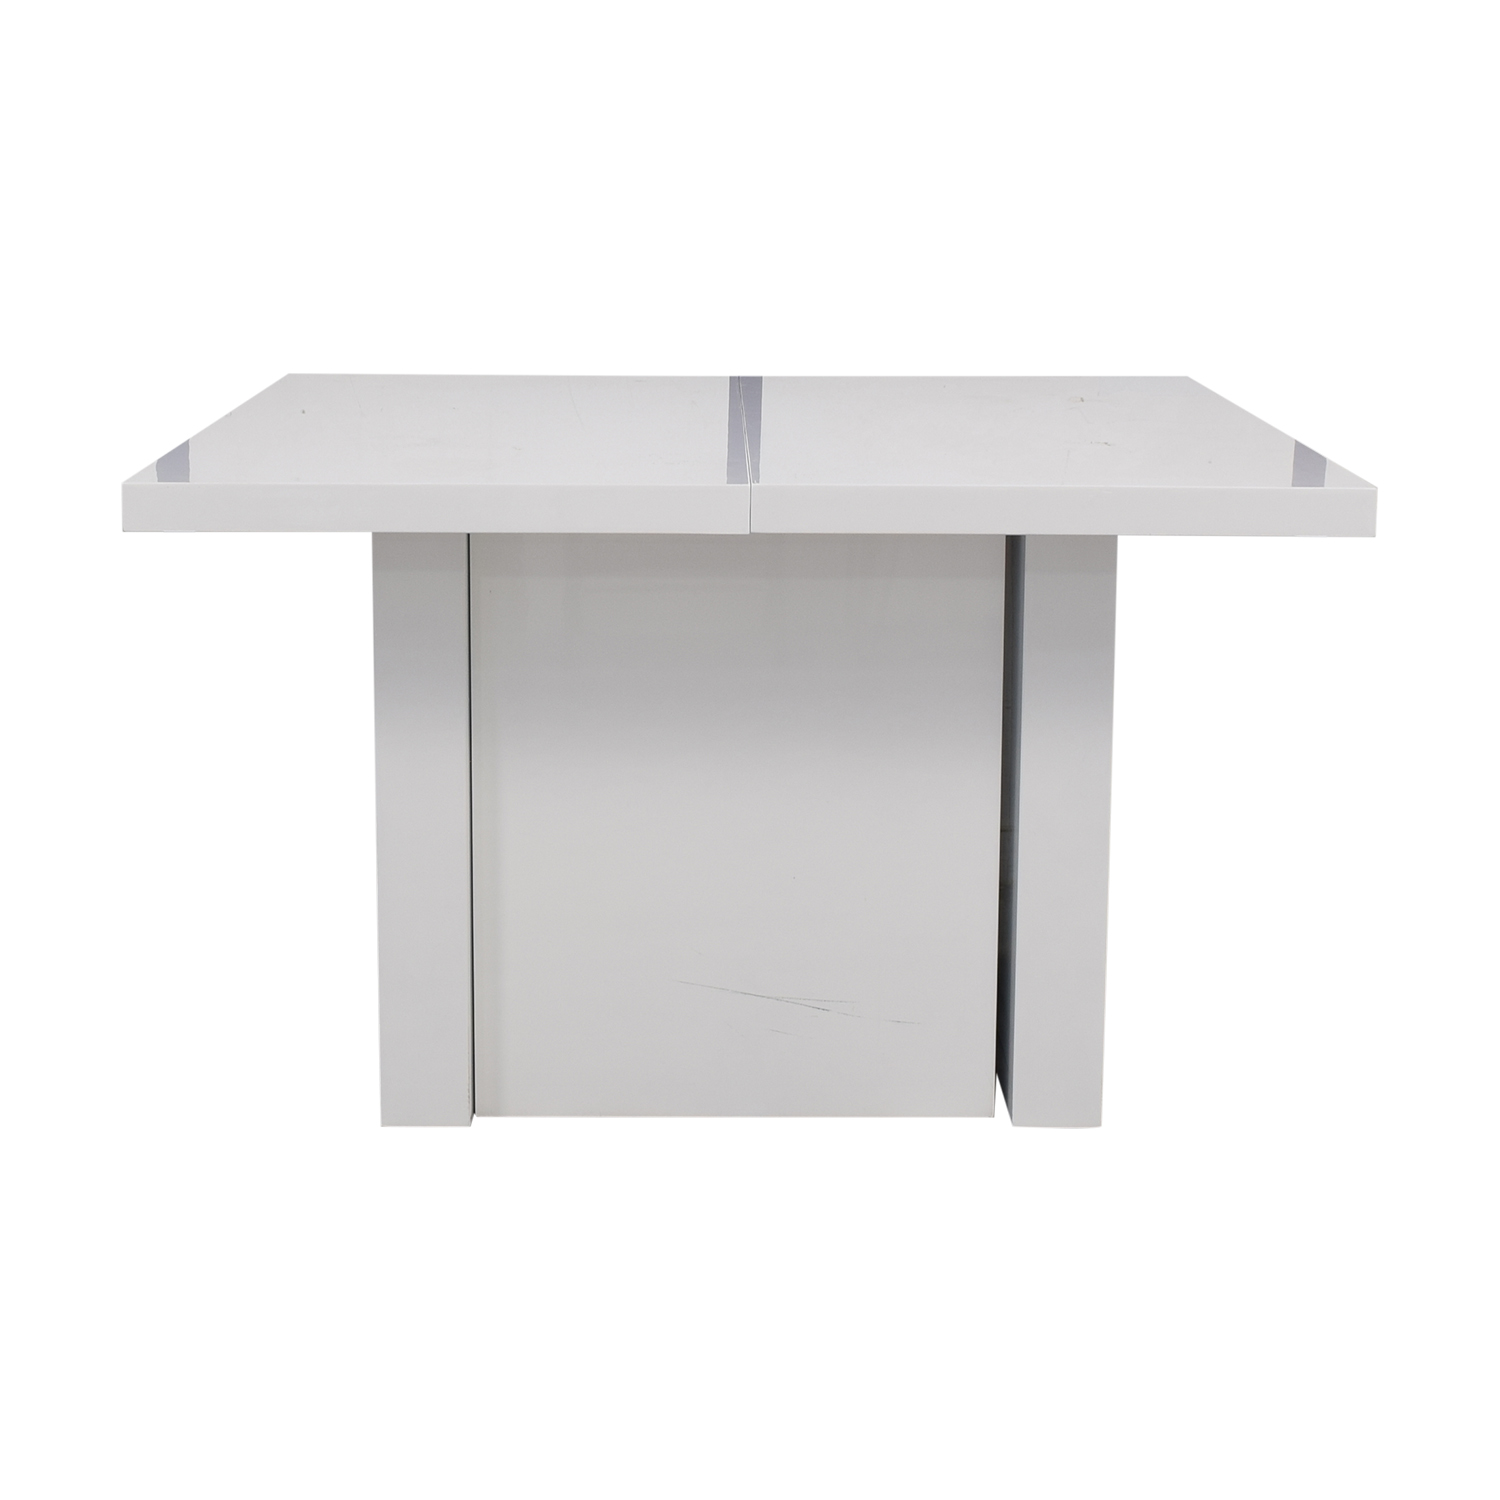 Orren Ellis Orren Ellis Stotfold White Extendable Table for sale